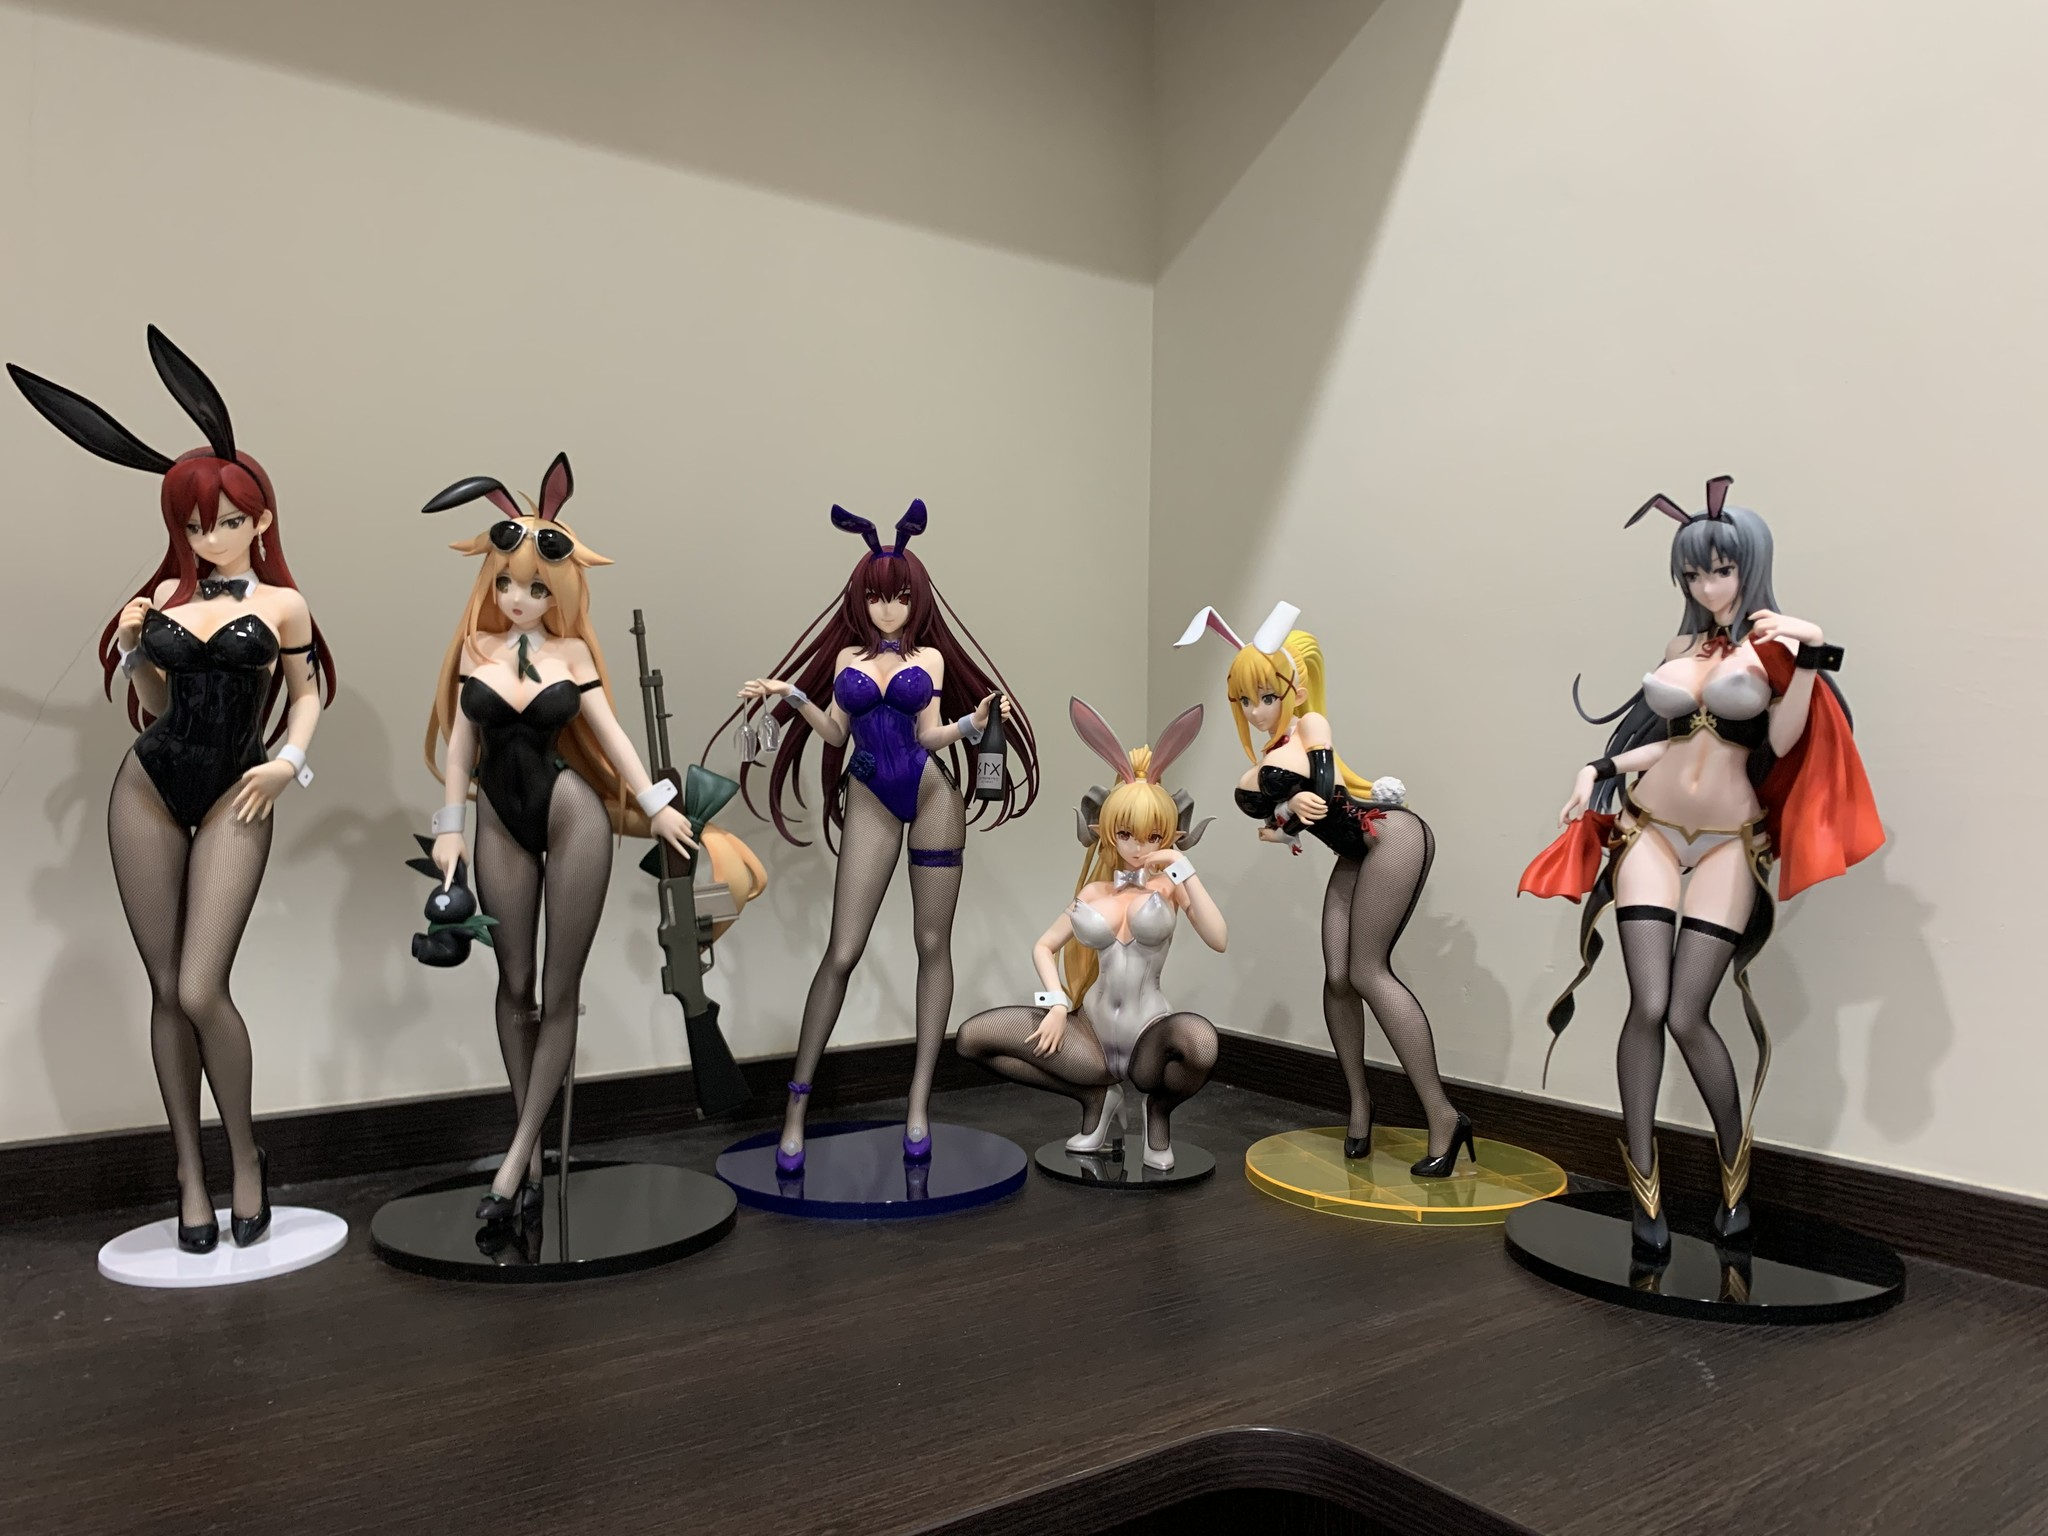 https://static.myfigurecollection.net/upload/pictures/2020/07/21/2479525.jpeg